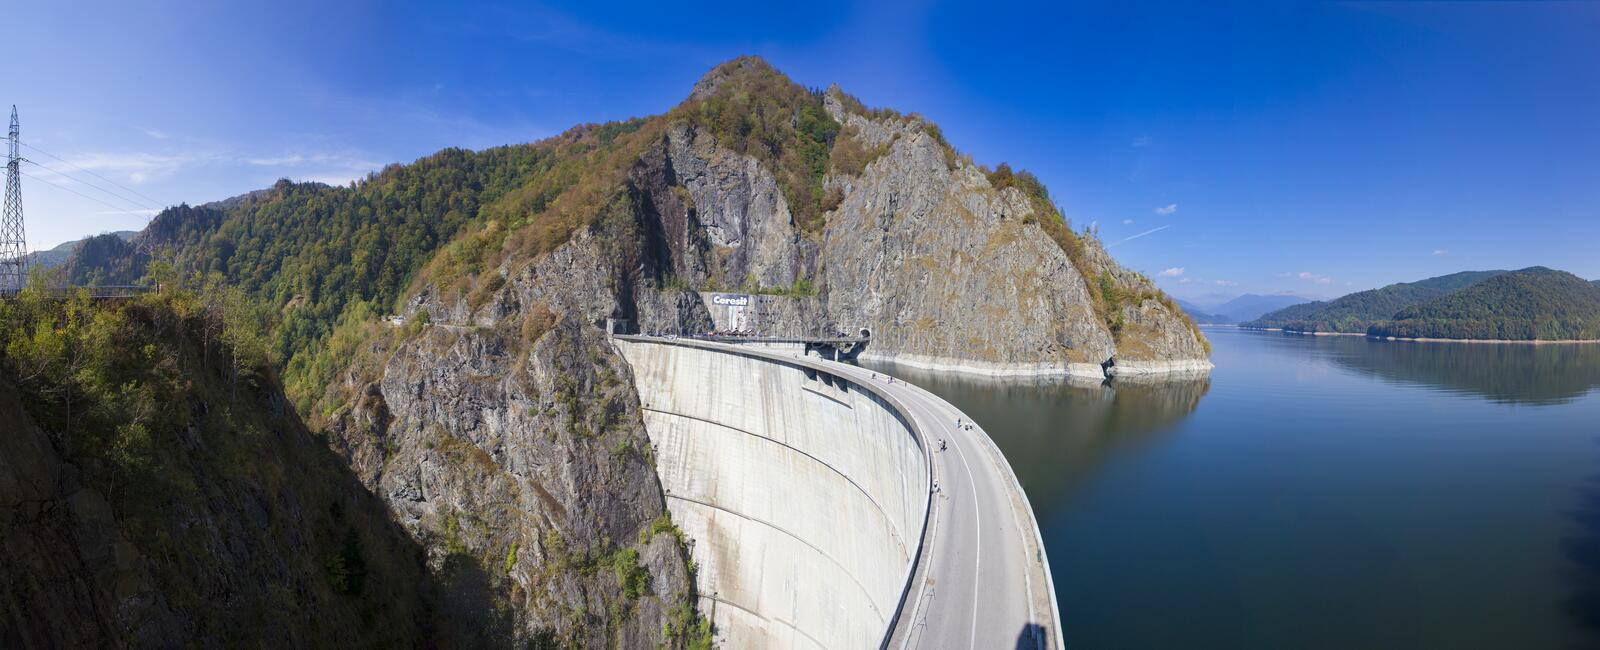 Vidraru dam and the river view from Statue of Prometheus royalty free stock photo